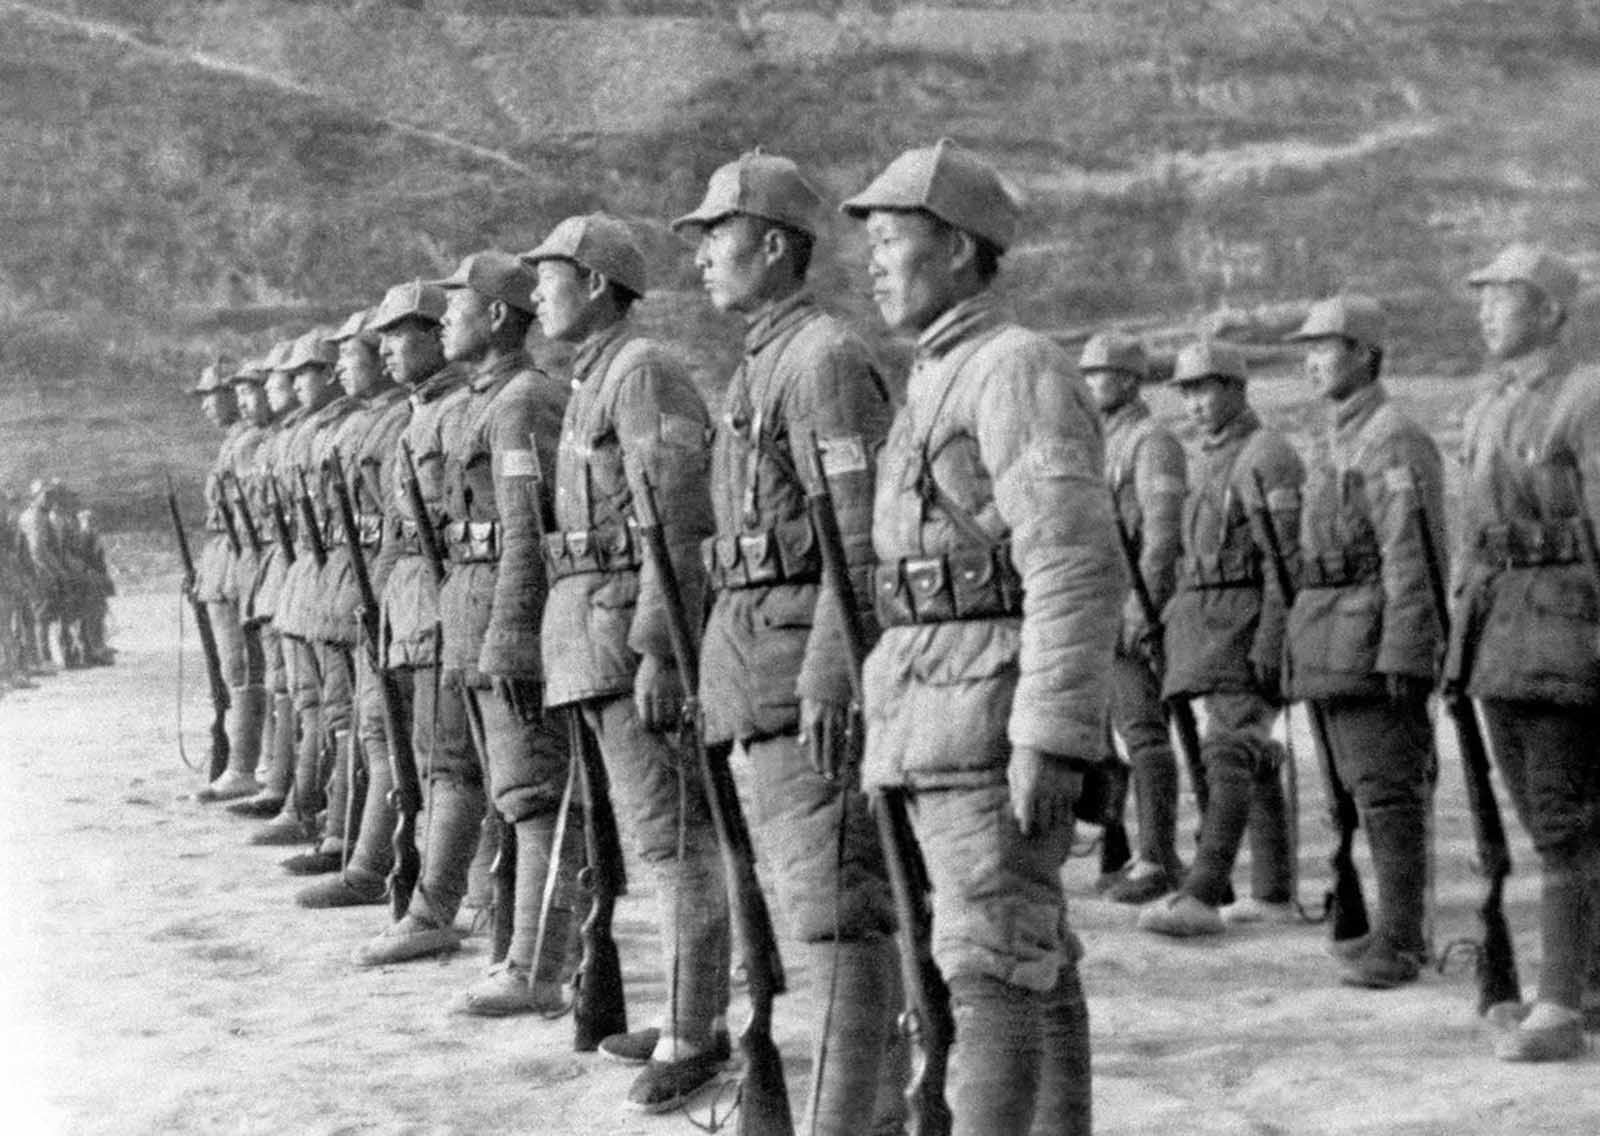 Soldiers of the Chinese communist Eighth Route Army on the drill field at Yanan, capital of a huge area in North China which is governed by the Chinese Communist Party, seen on March 26, 1946. These soldiers are members of the